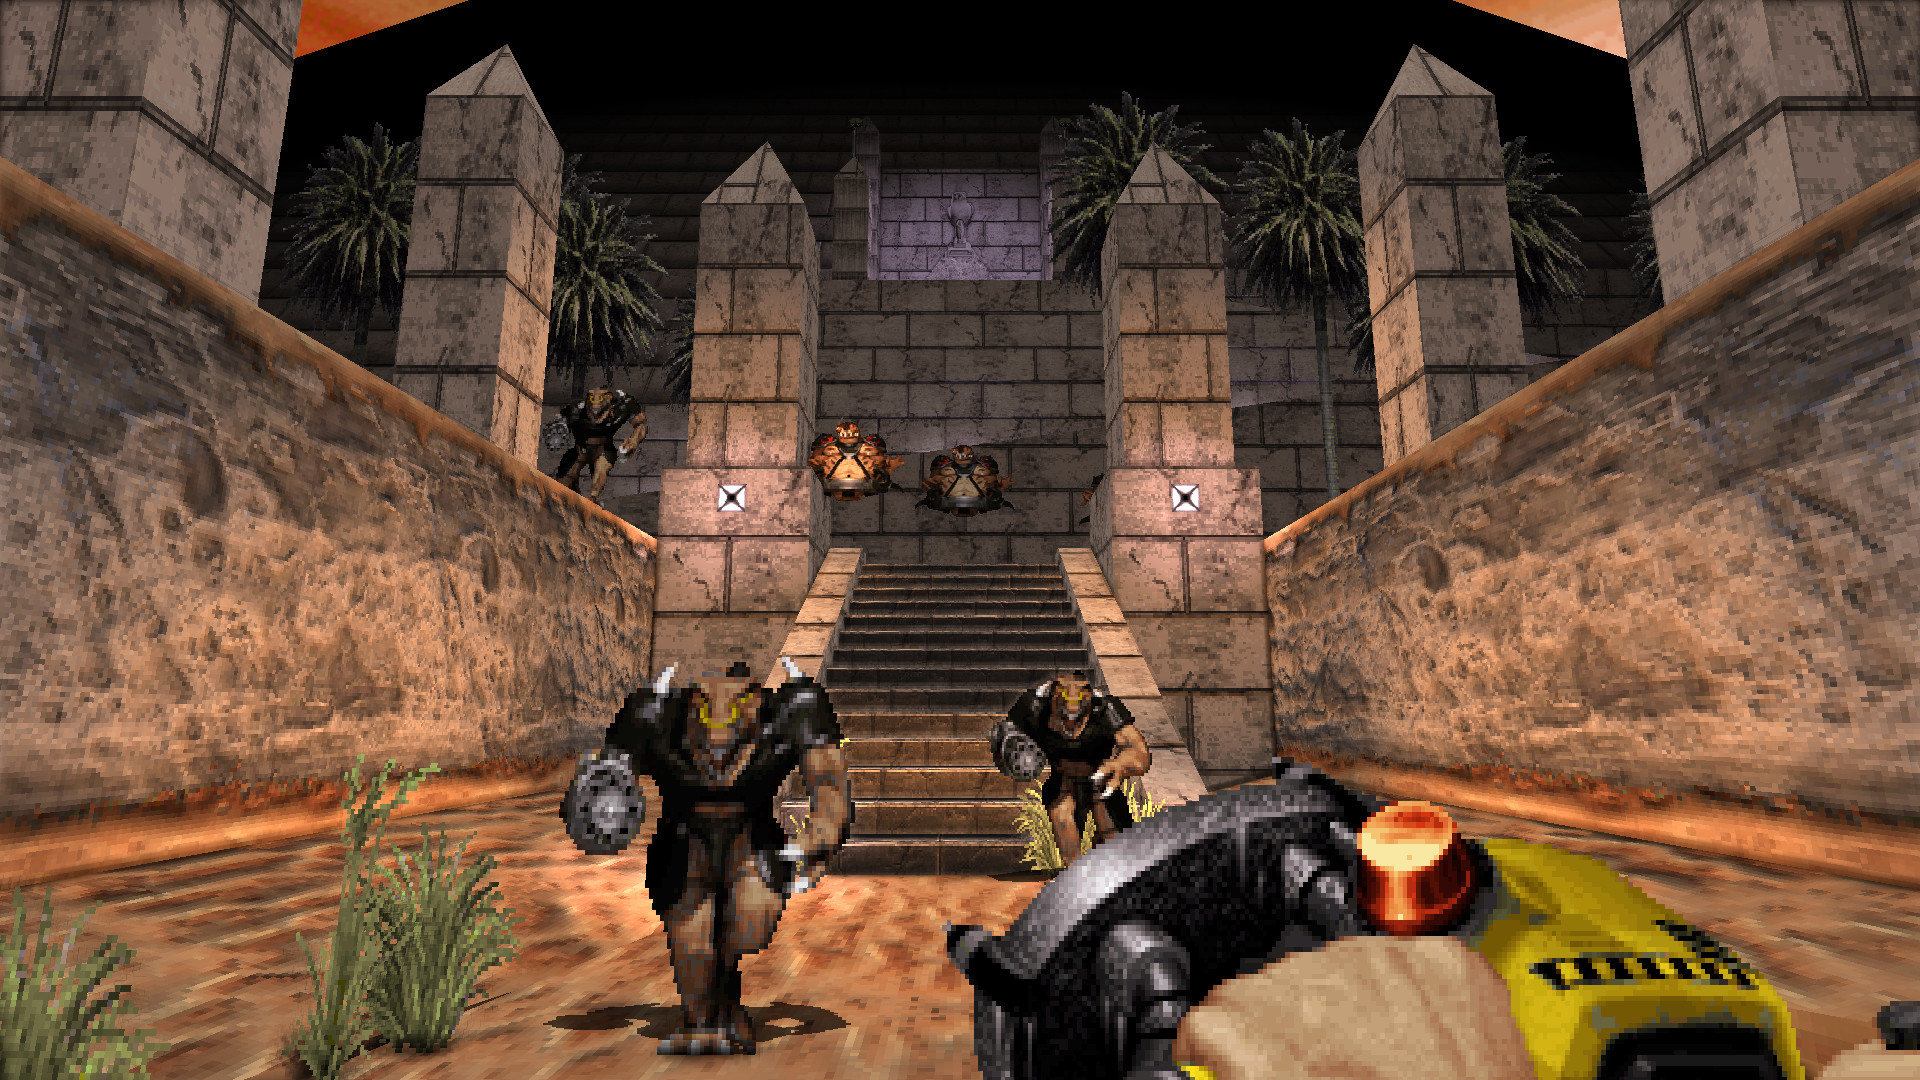 3d games free download for windows 7